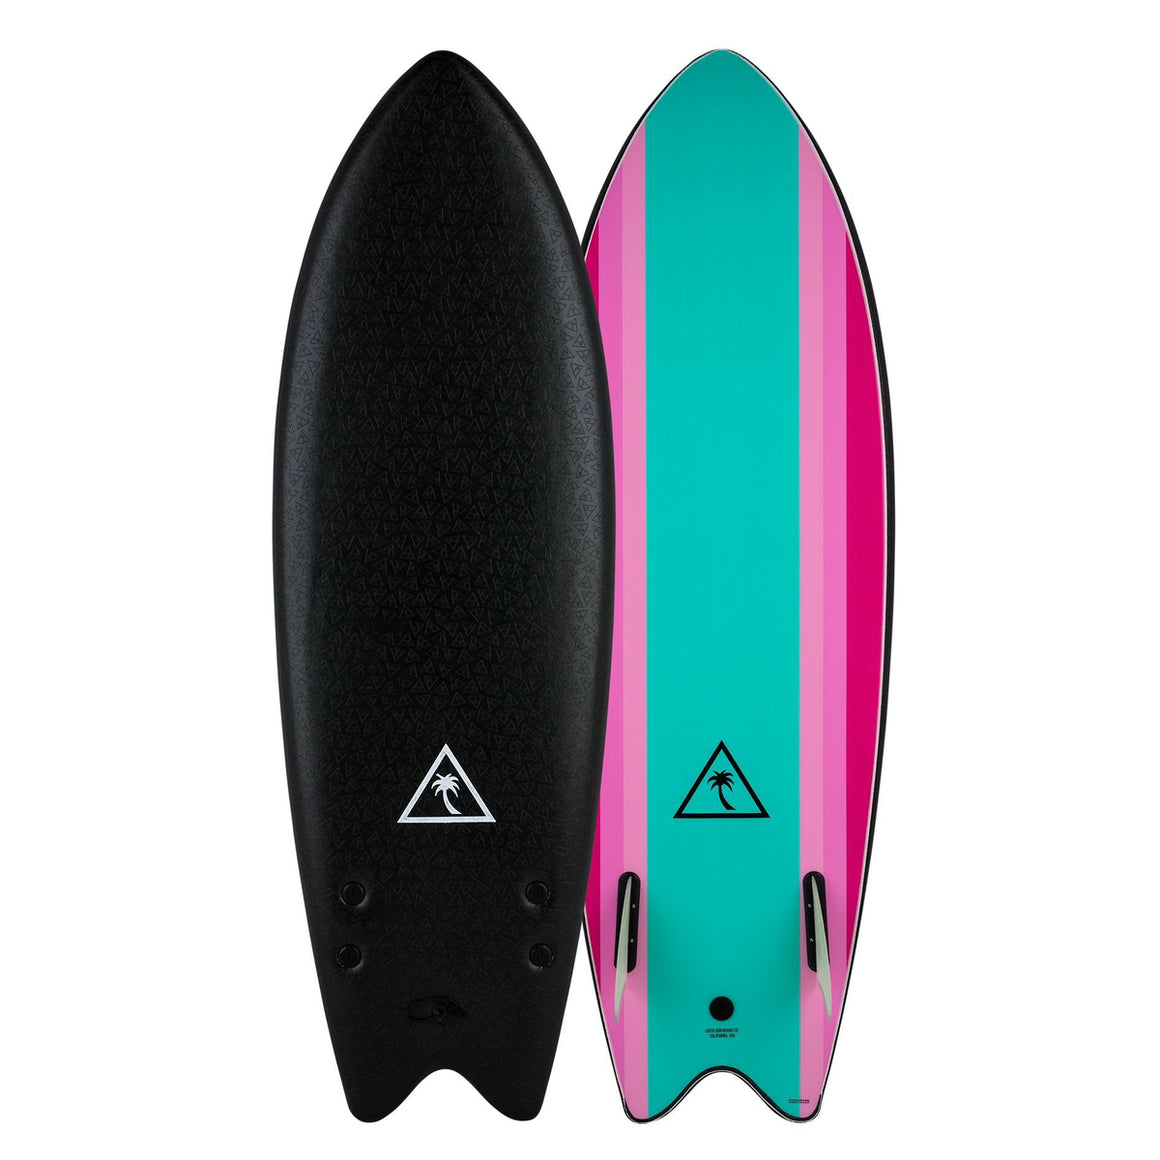 Catch Surf Heritage 5'6 Retro Fish - Twin Fin - Black/Turquoise 20